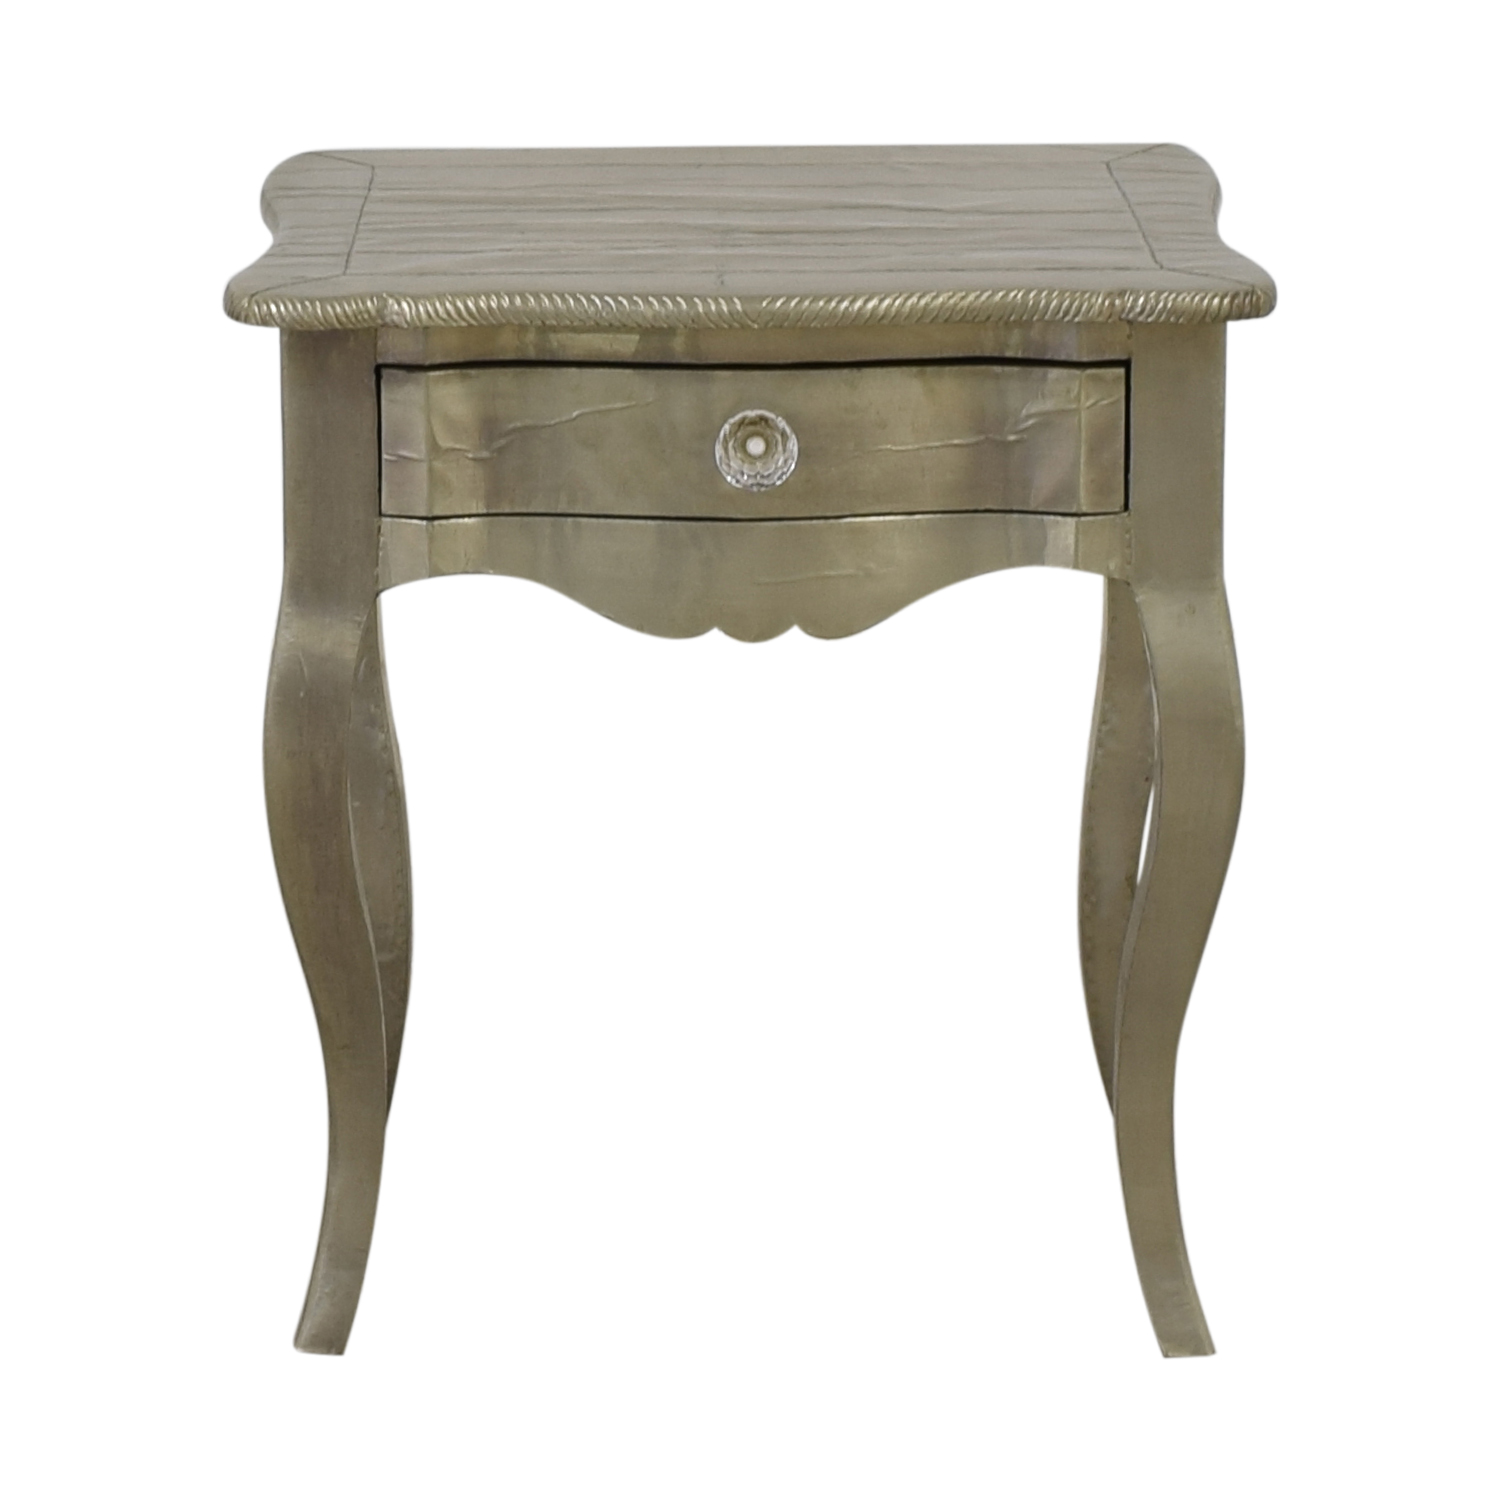 ABC Carpet & Home ABC Carpet & Home Wood Silver Leaf Bedside Table nj